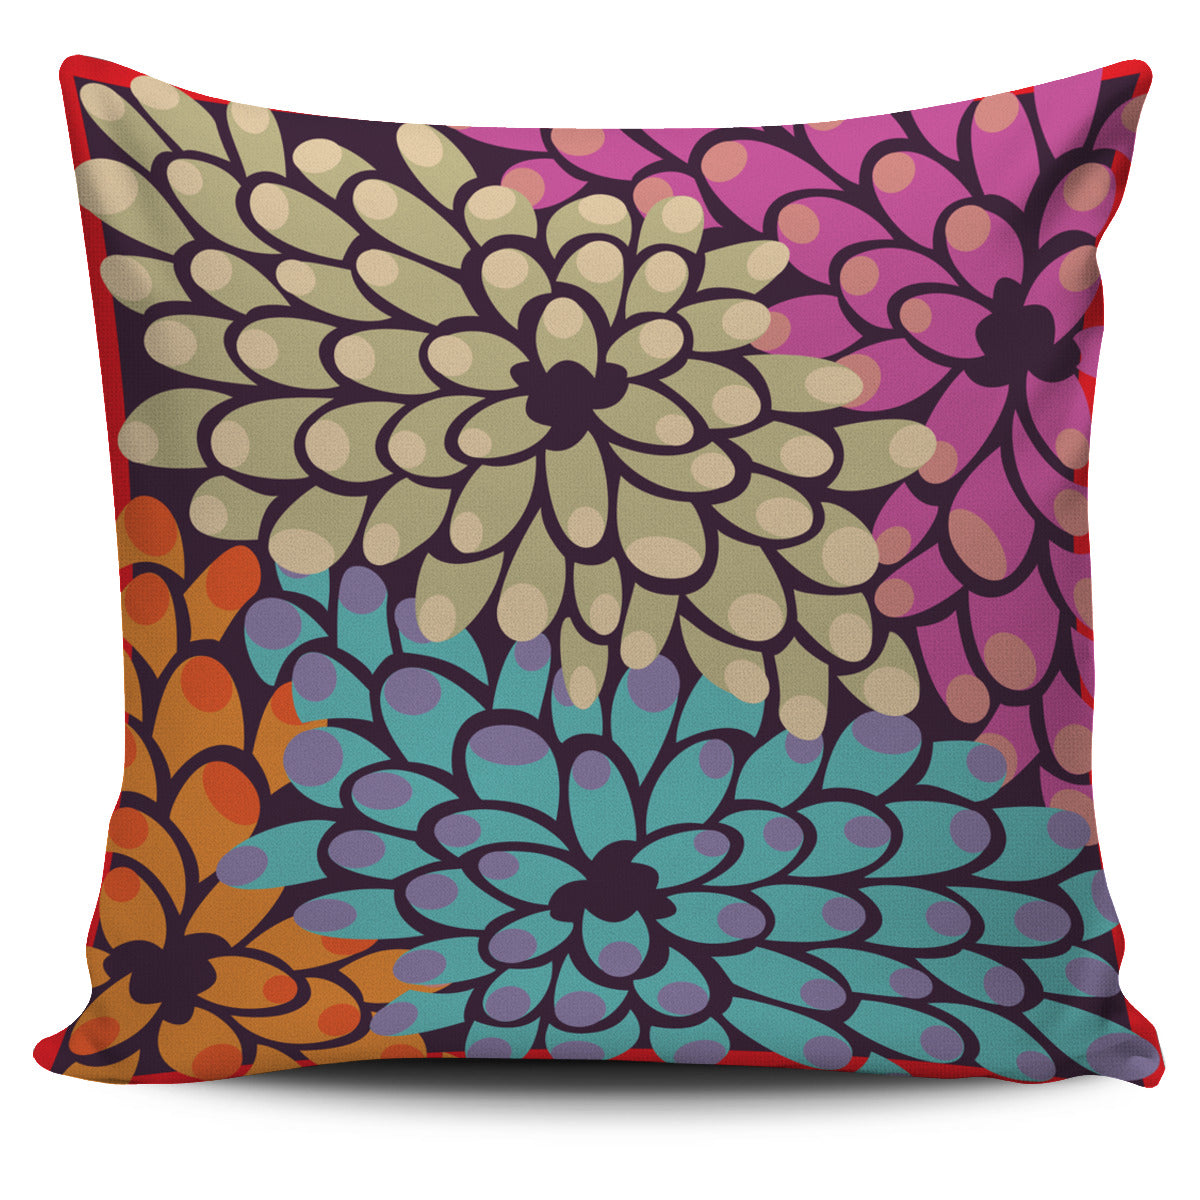 Bohemian Floral Throw Pillow Cover – Top Selling World